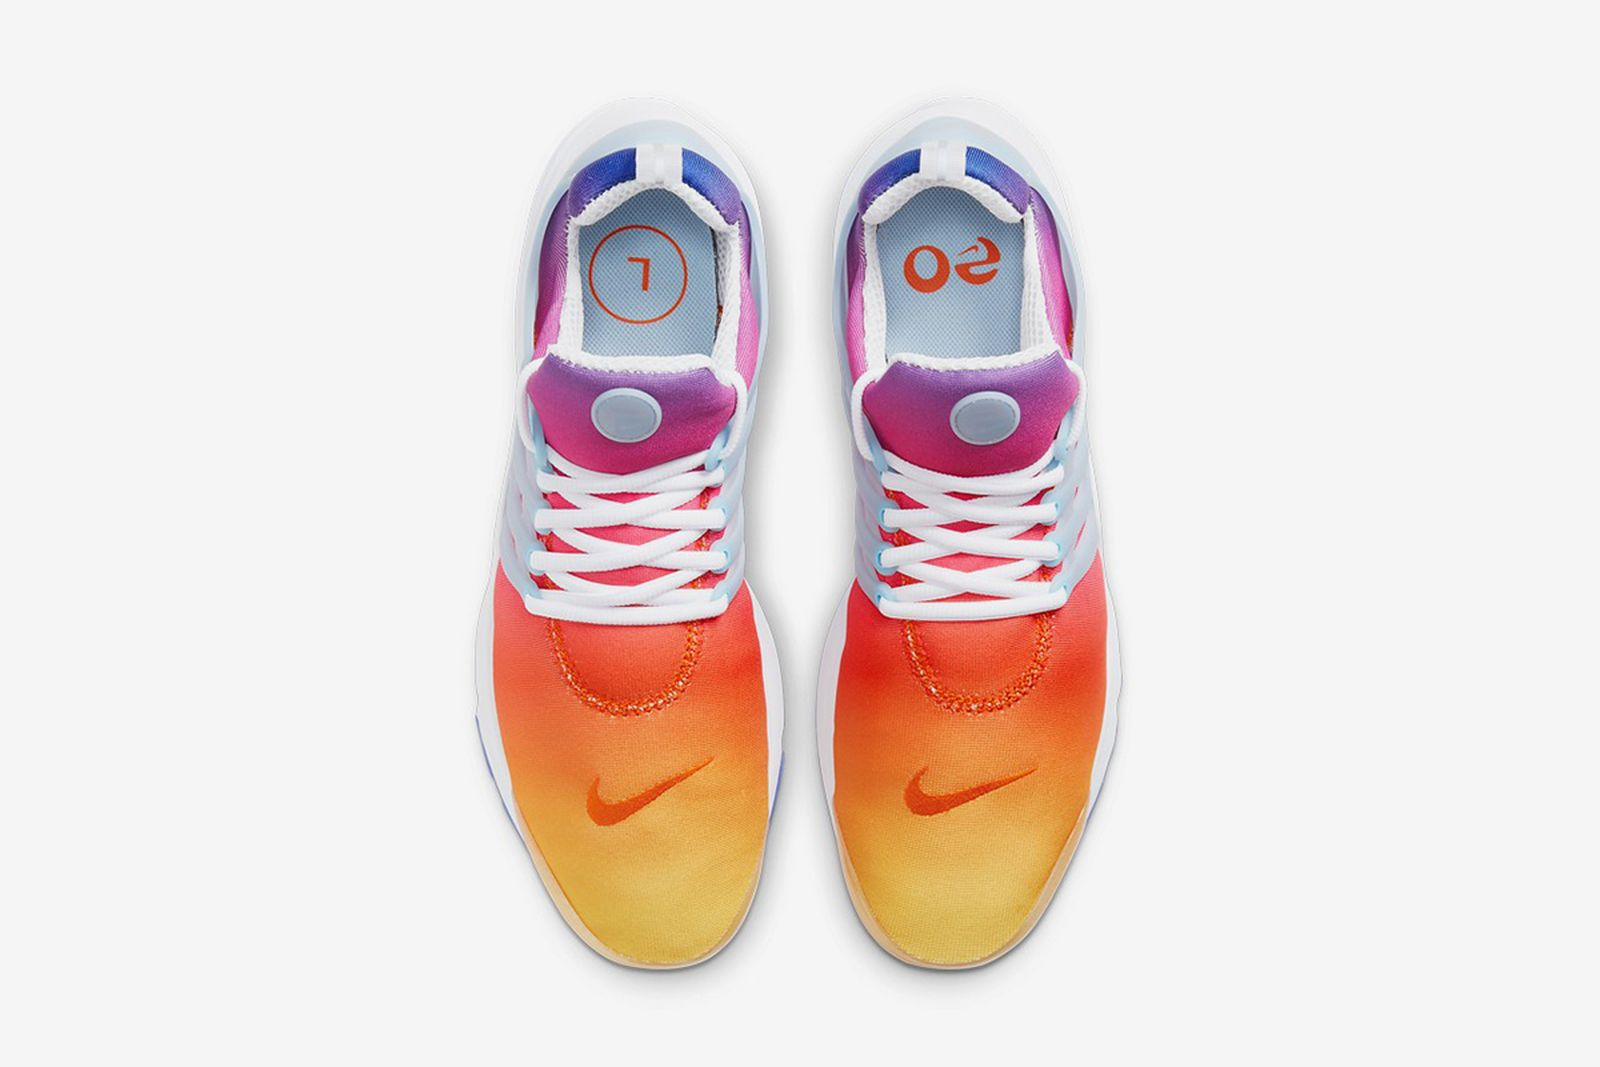 daily-sneaker-news-03-01-2021-1-03